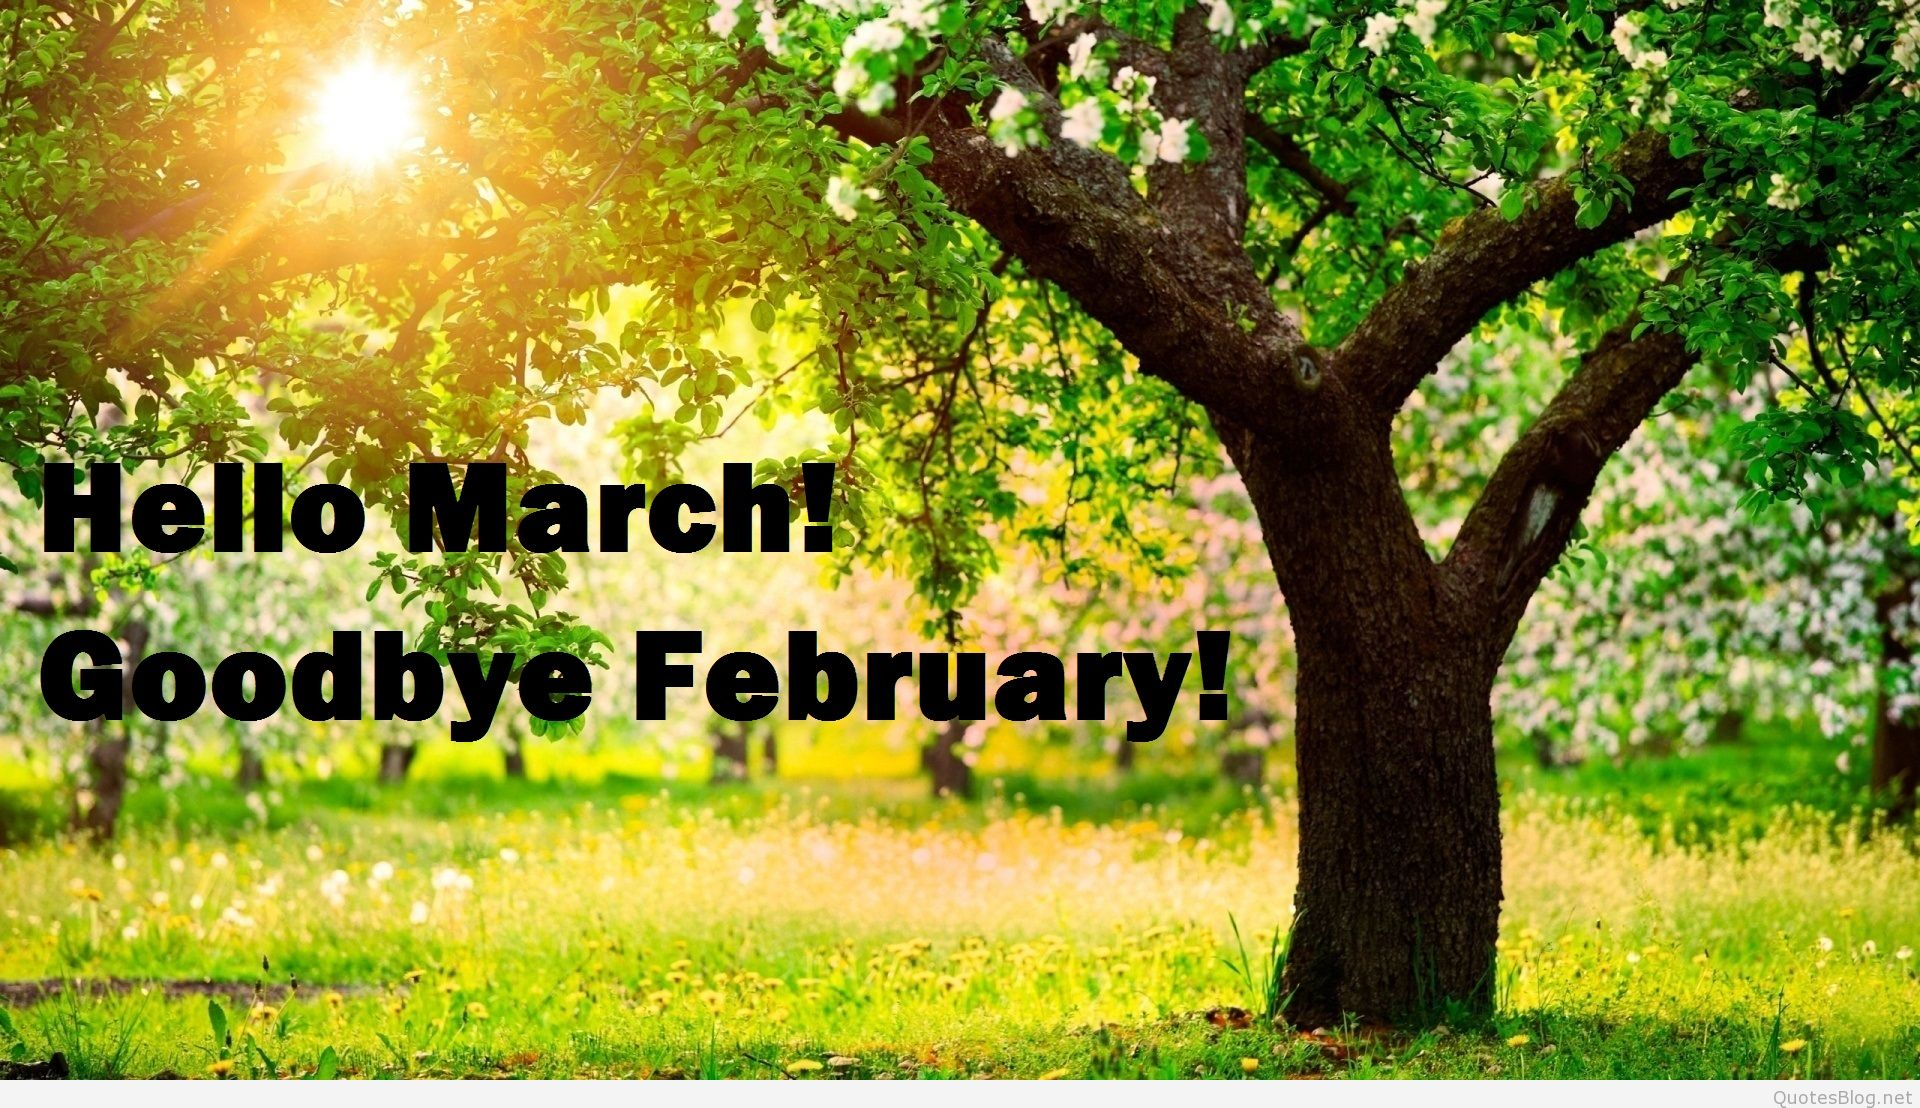 Hello March, Goodbye February